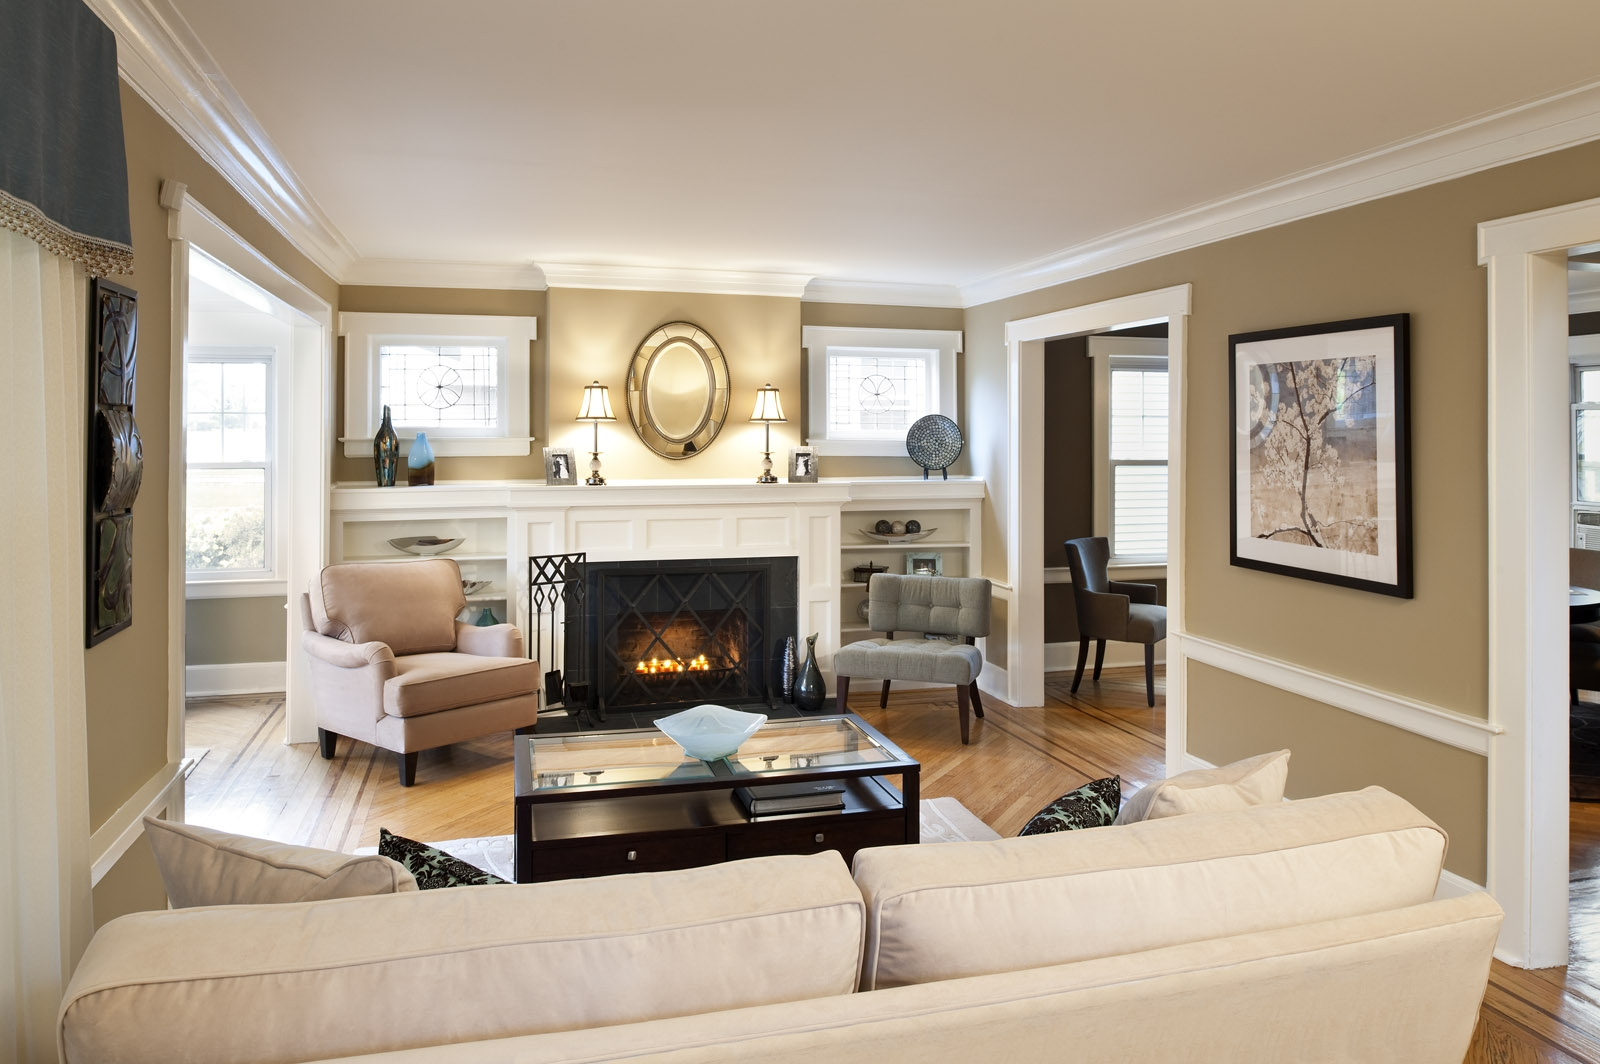 Image of: Beige Living Room Interior